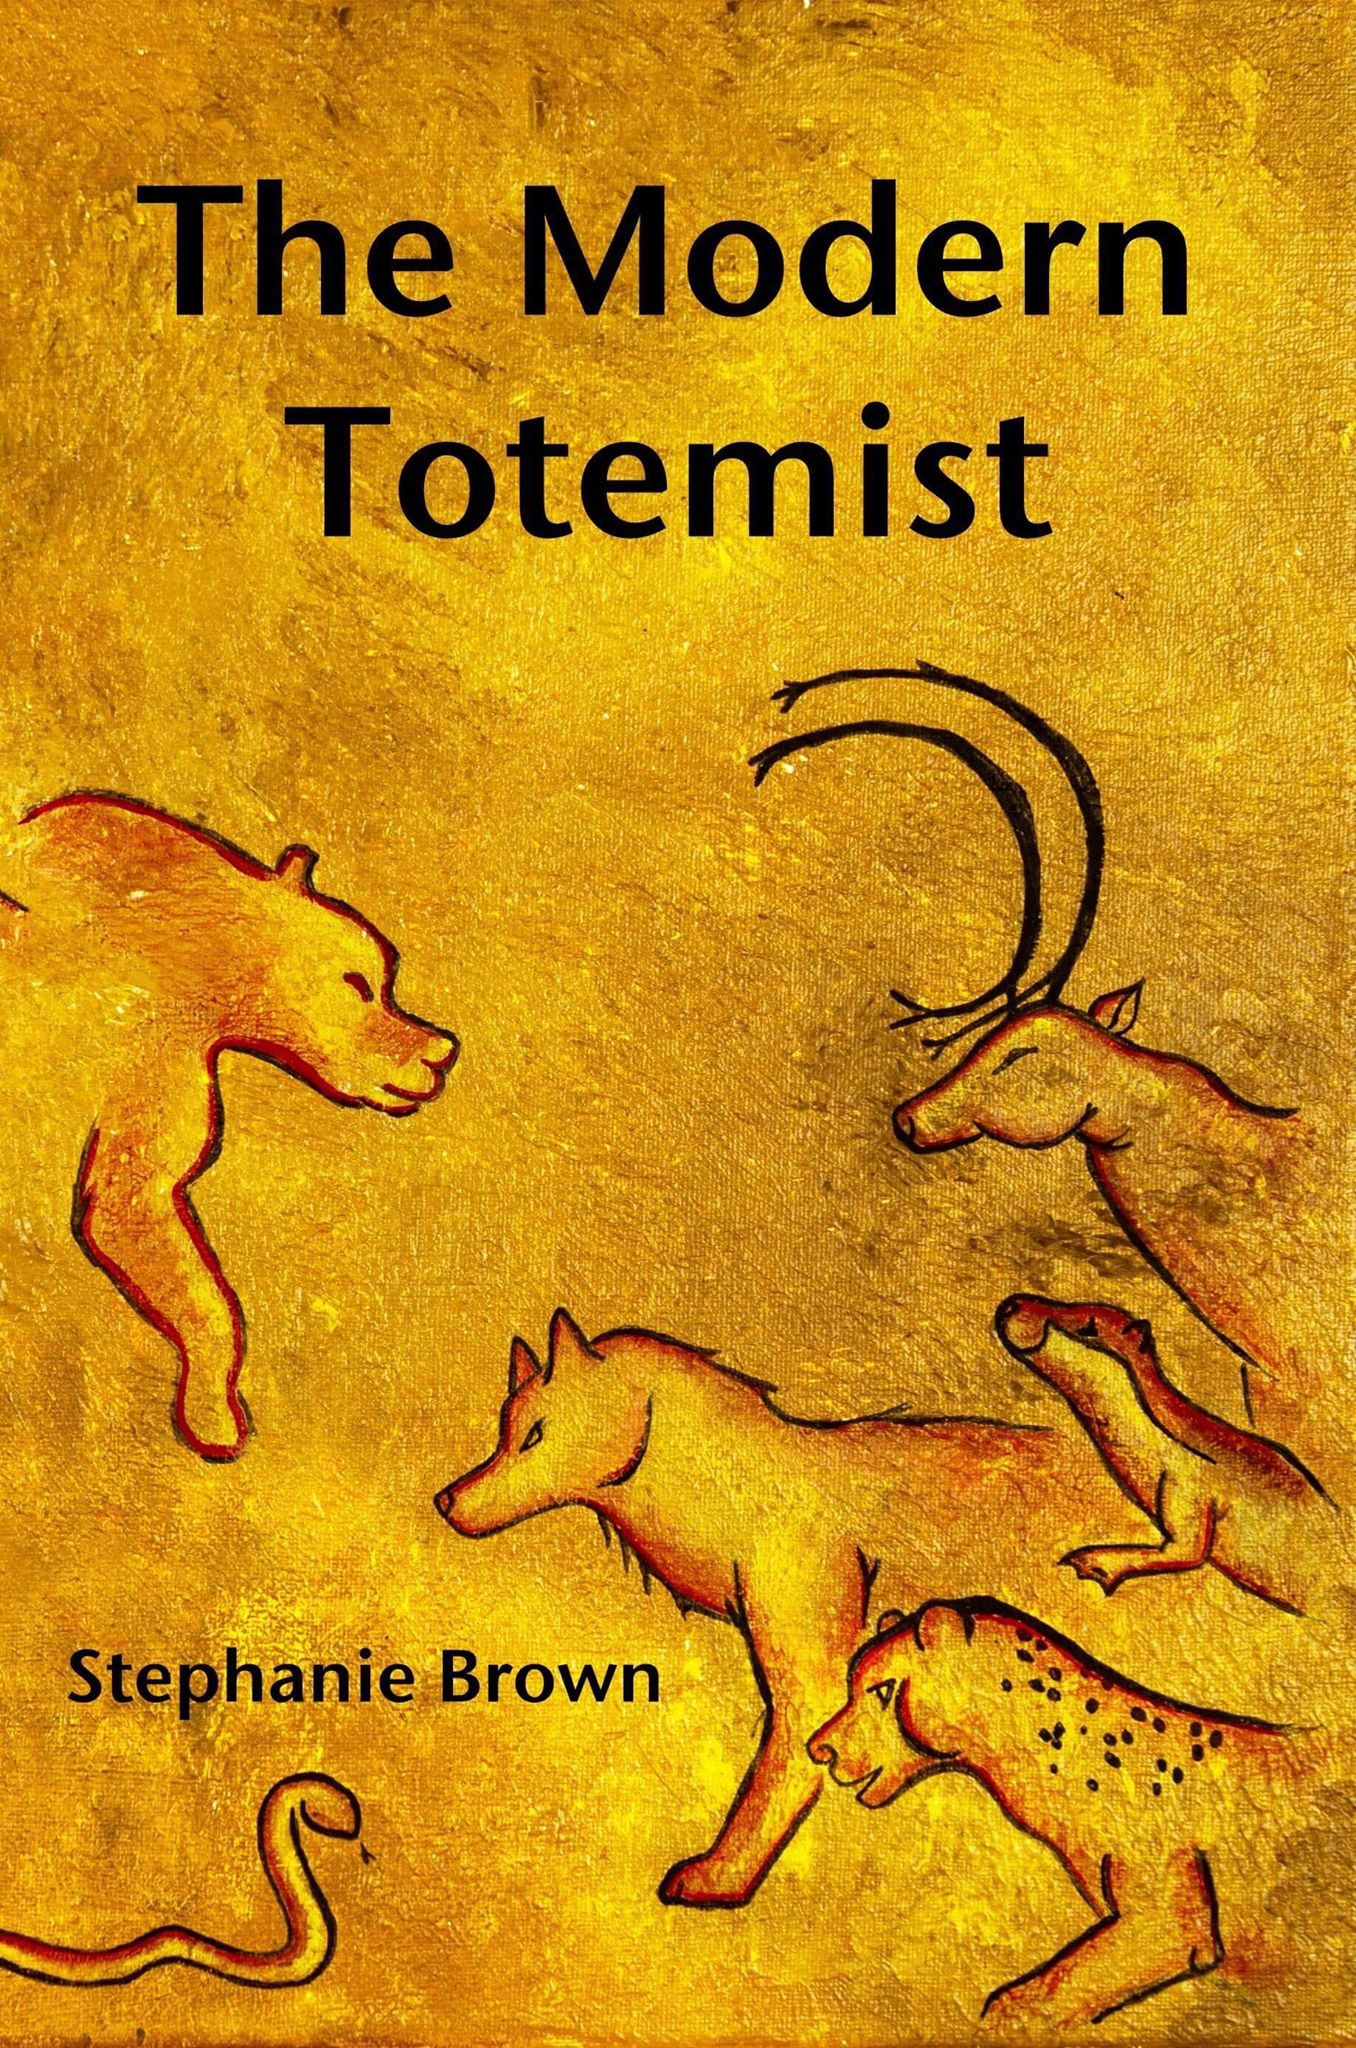 The Modern Totemist